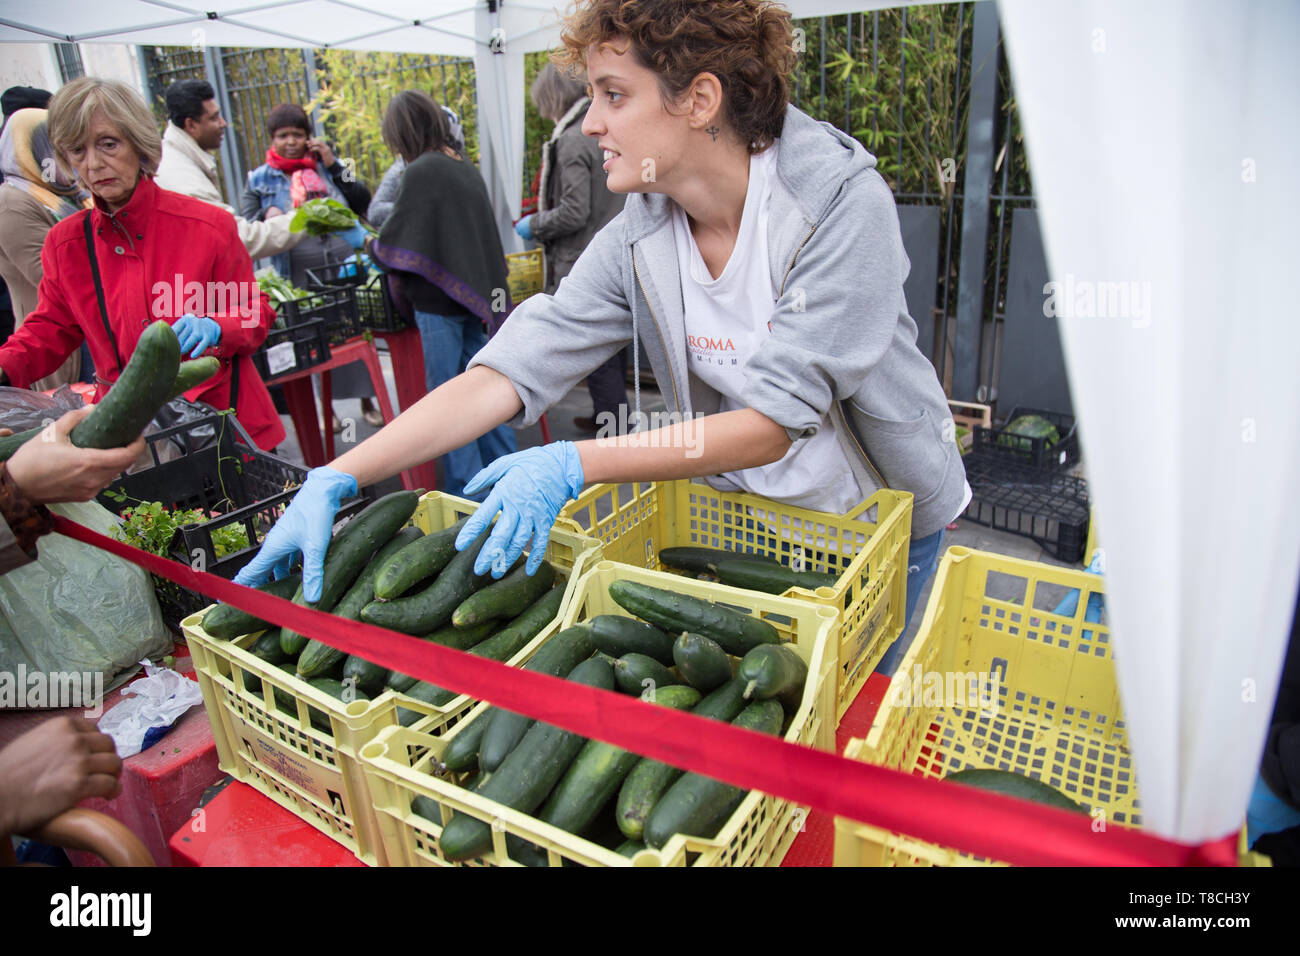 Roma, Italy. 11th May, 2019. An Italian volunteer distributes food A project organized by the Eco dalle Città association with the sponsorship of the I municipality to the new Esquilino market in Rome Credit: Matteo Nardone/Pacific Press/Alamy Live News - Stock Image